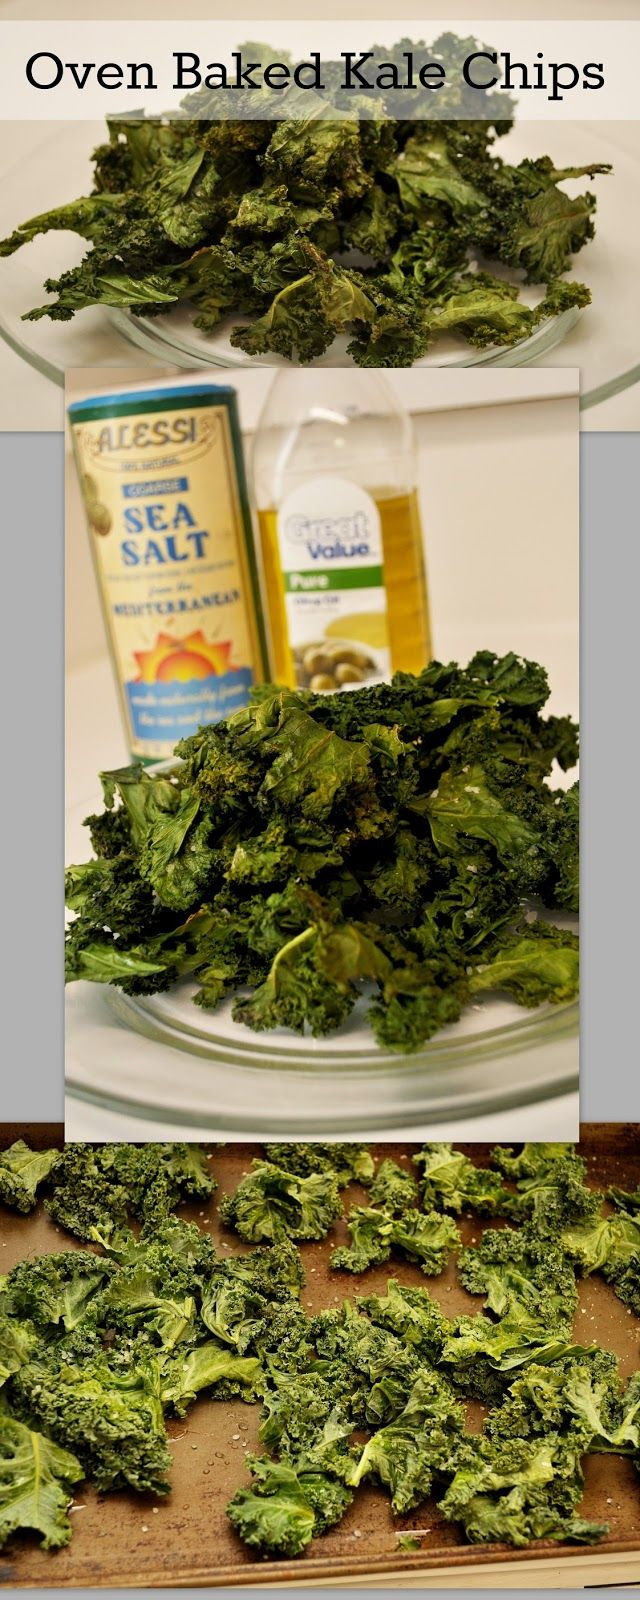 Housewife Eclectic: Oven Baked Kale Chips